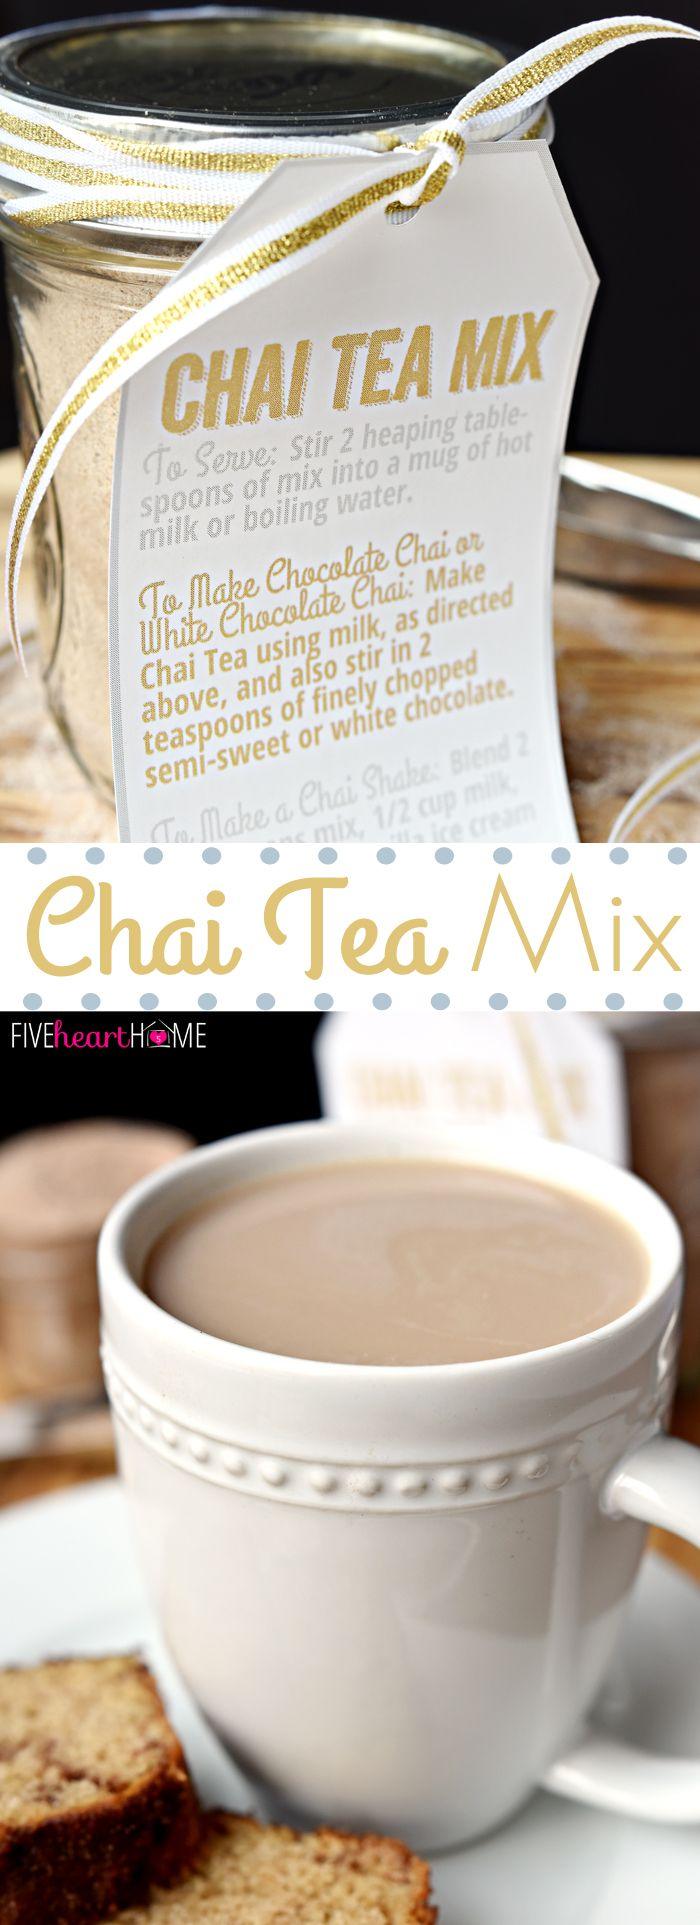 Chai Tea Mix ~ a unique homemade food gift for those who love Chai Tea; use the mix to whip up everything from copycat Starbucks Chai Tea Lattes to Chai Milkshakes, and include the free printable gift tags with directions for gift giving! | FiveHeartHome.com